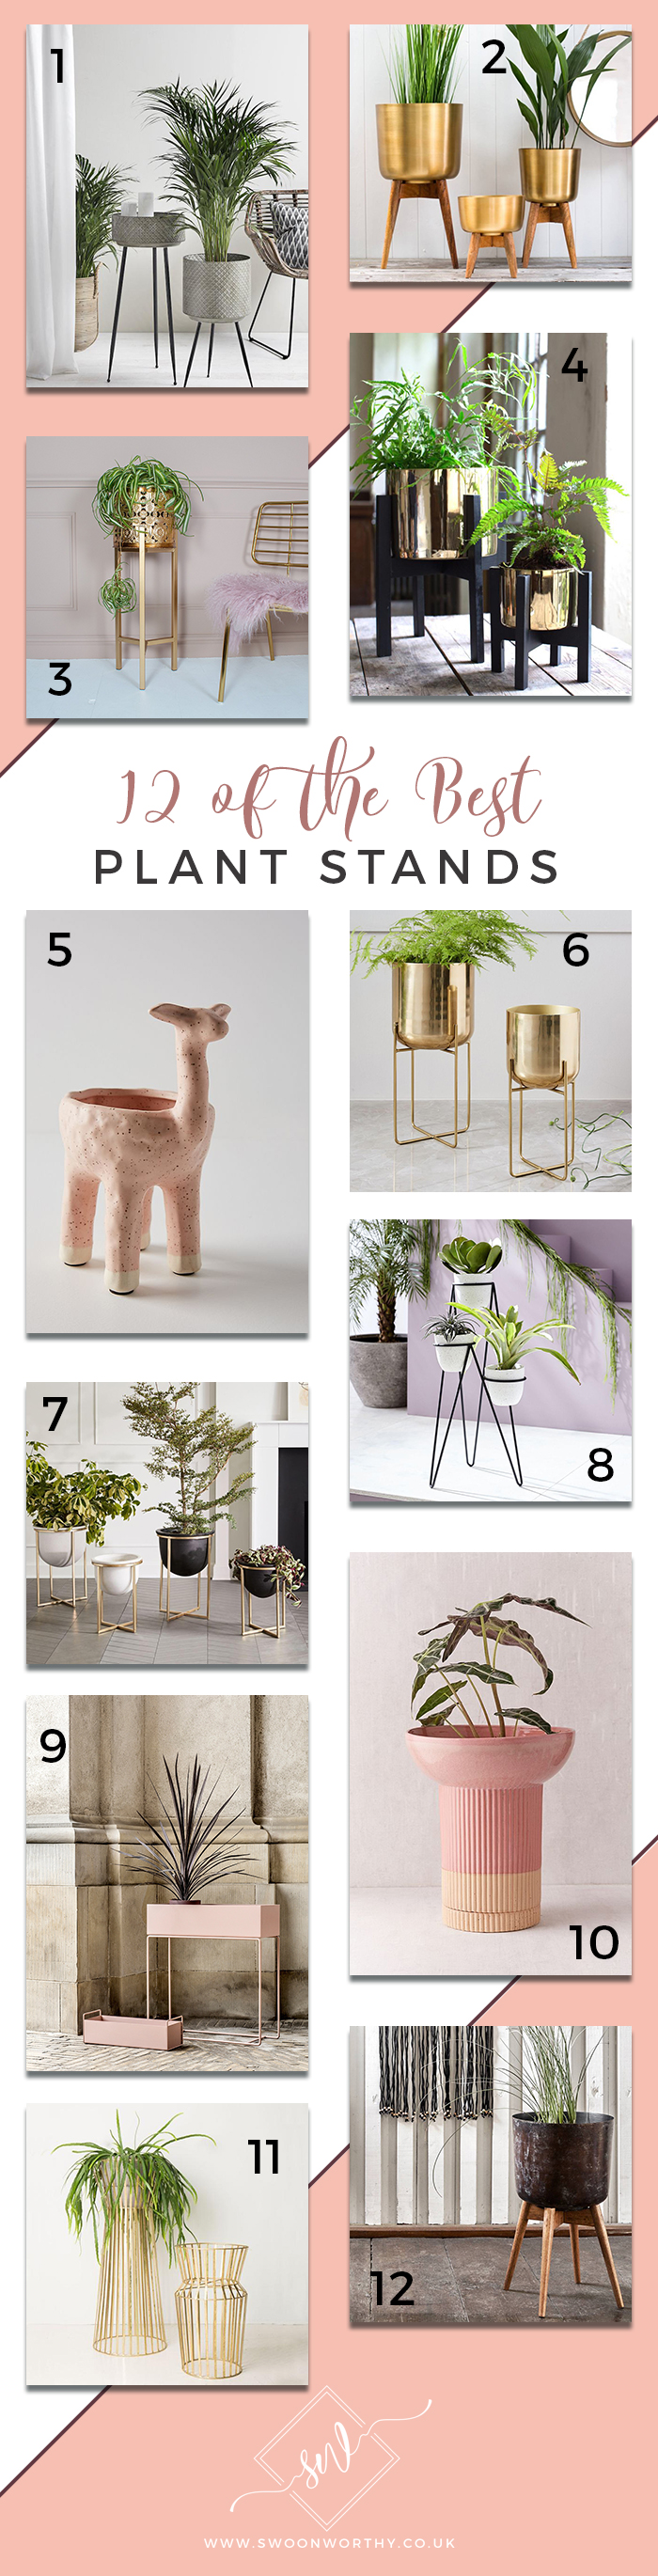 12 of the Best Plant Stands UK